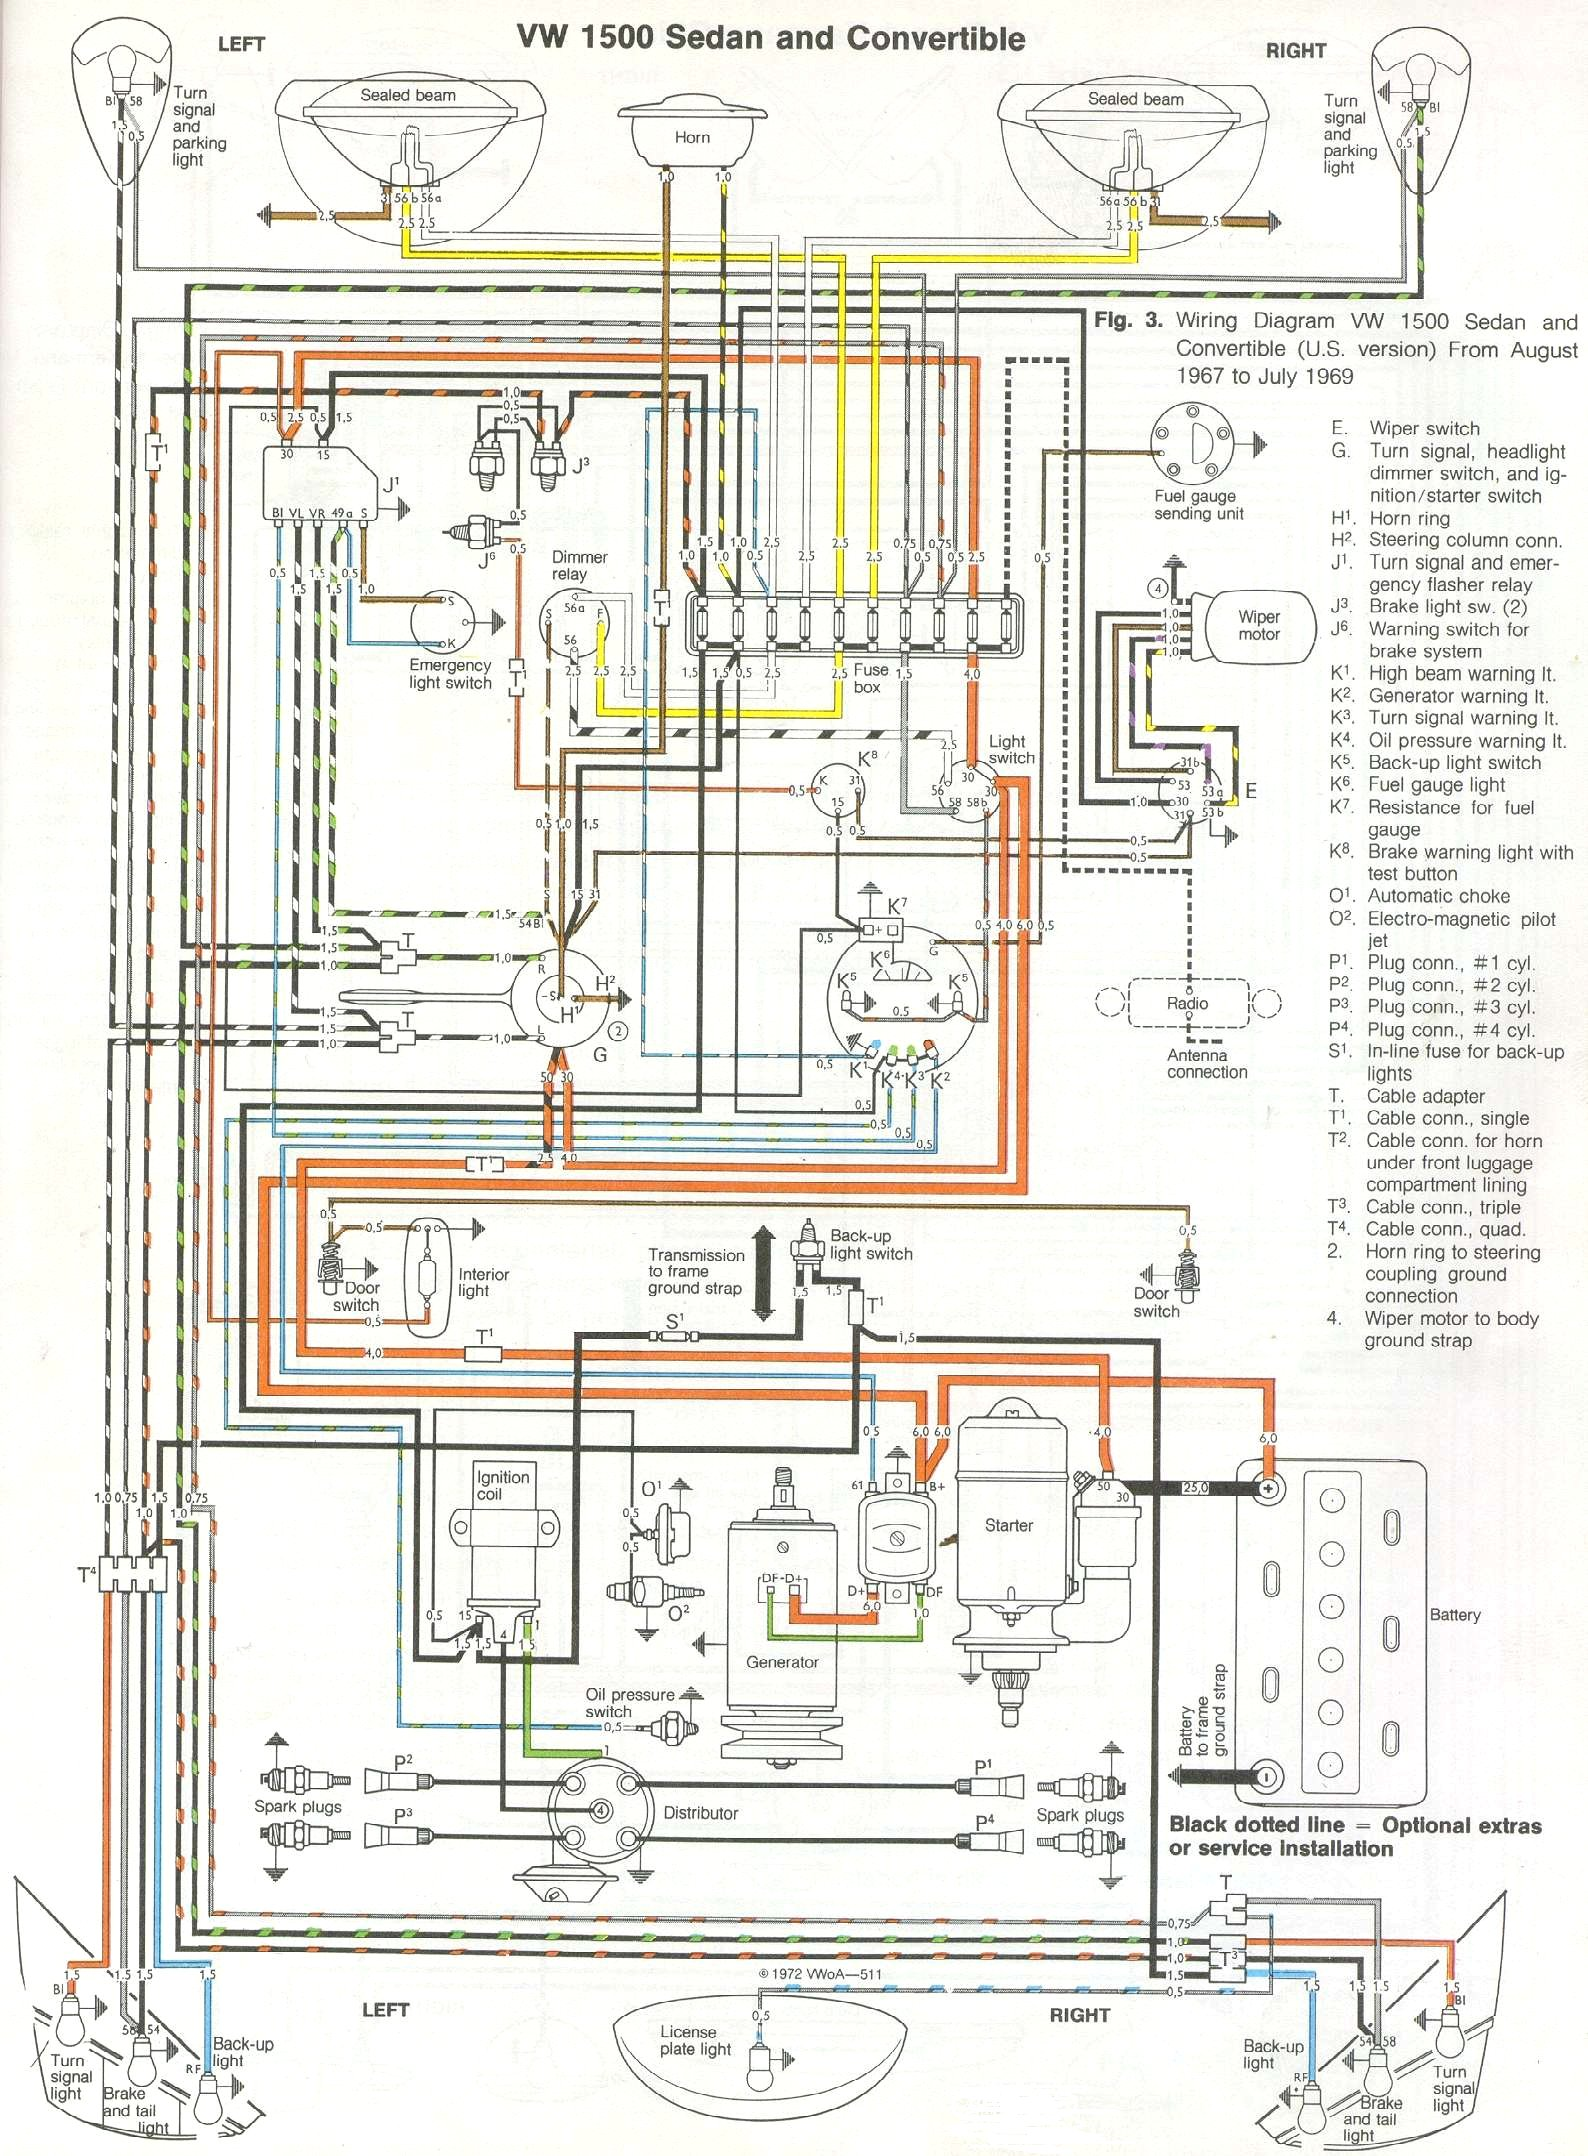 bug_6869 vw wiring harness diagram cj7 wiring harness diagram \u2022 wiring 1971 vw bus wiring diagram at webbmarketing.co